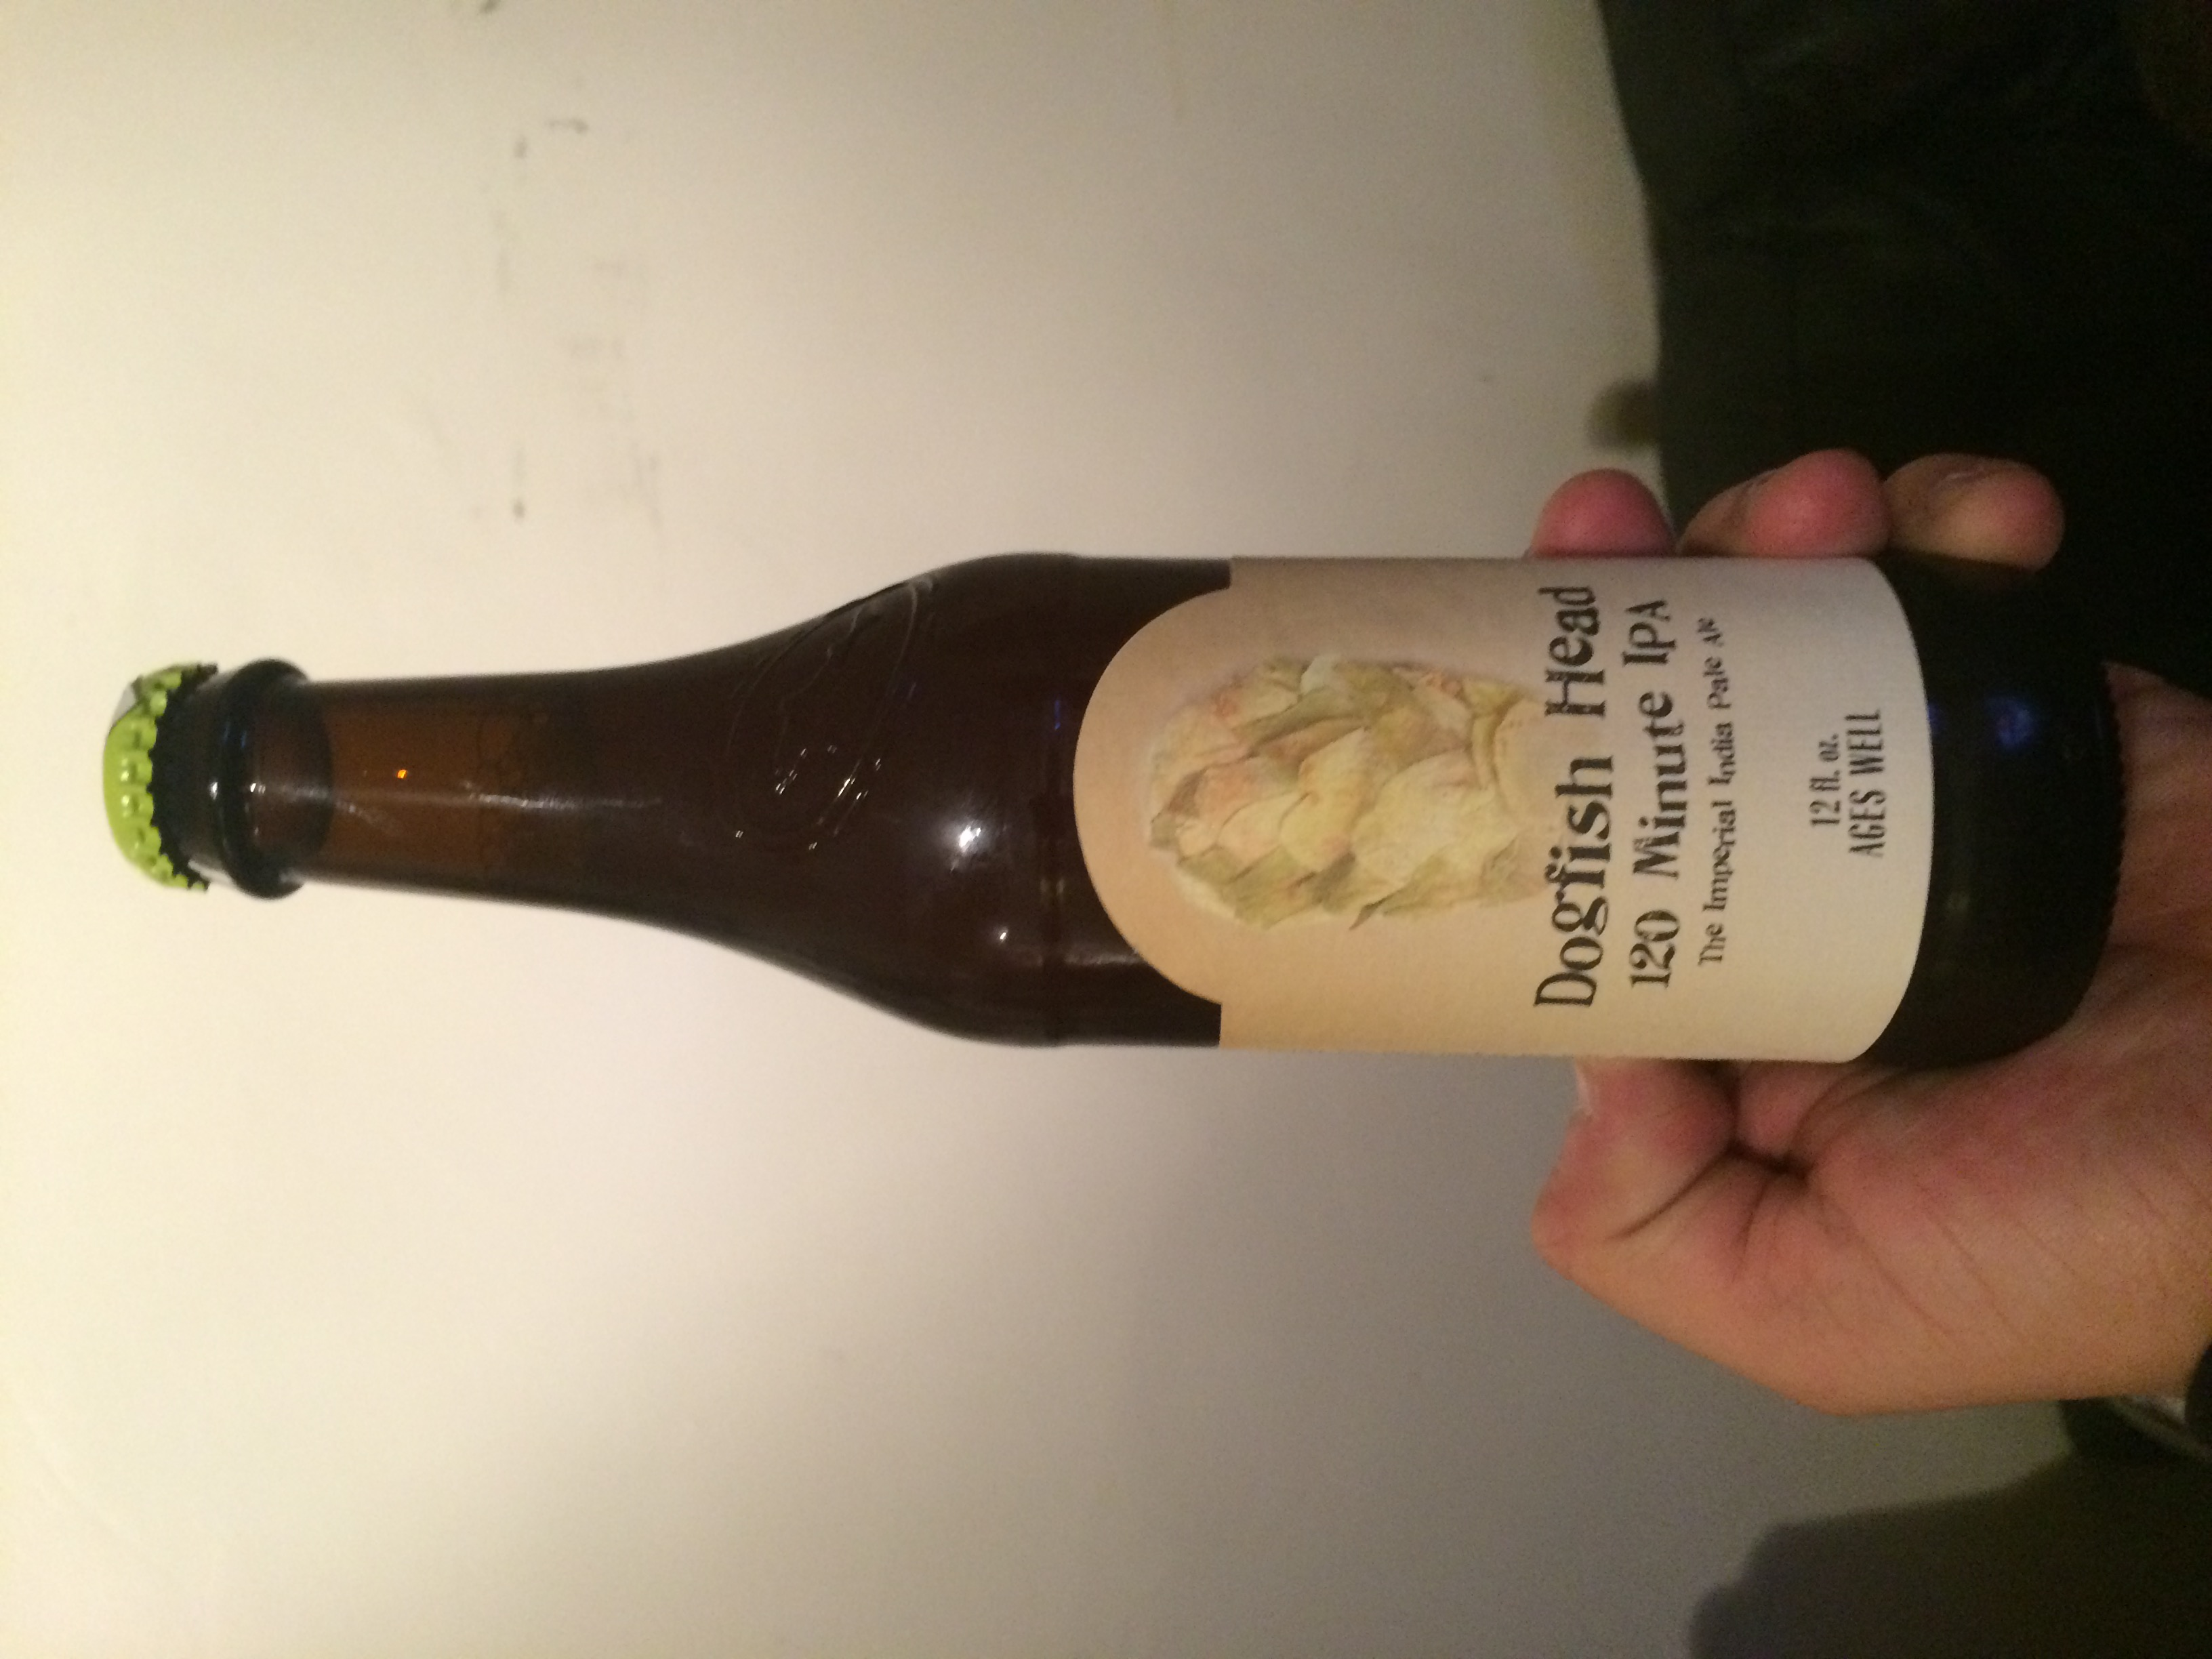 I wondered often if I would ever taste this beer.